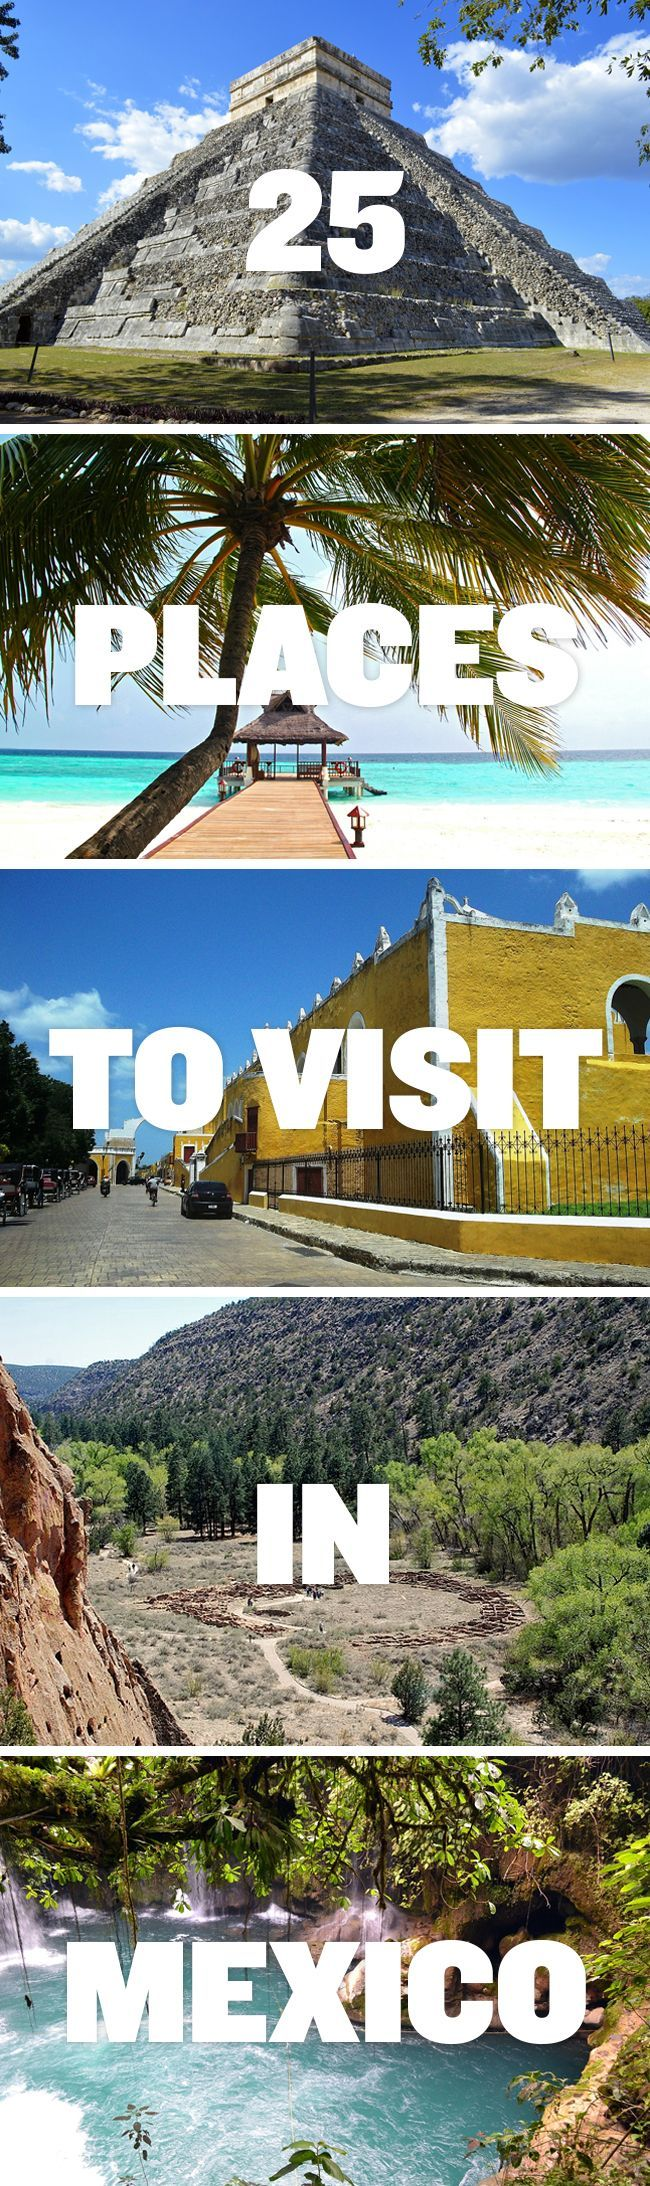 A Comprehensive List of Places to Visit in Mexico that will help you decide on where to go on your next vacation. Article from @roadaffair